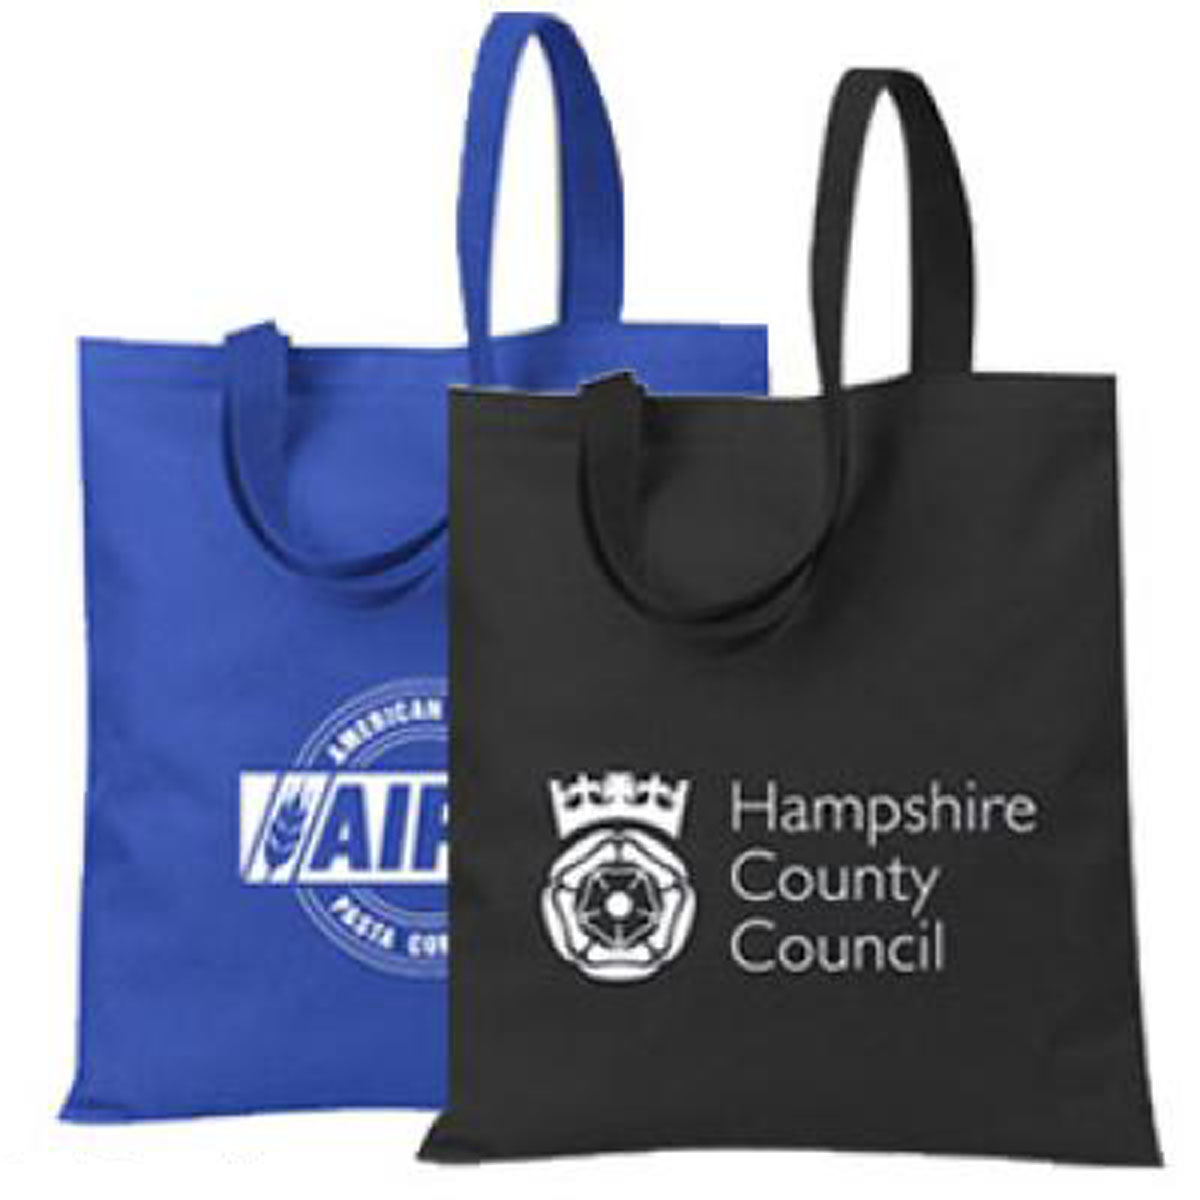 Promotional Tote Bags | Contract Screen Printing | Contract Screen ...